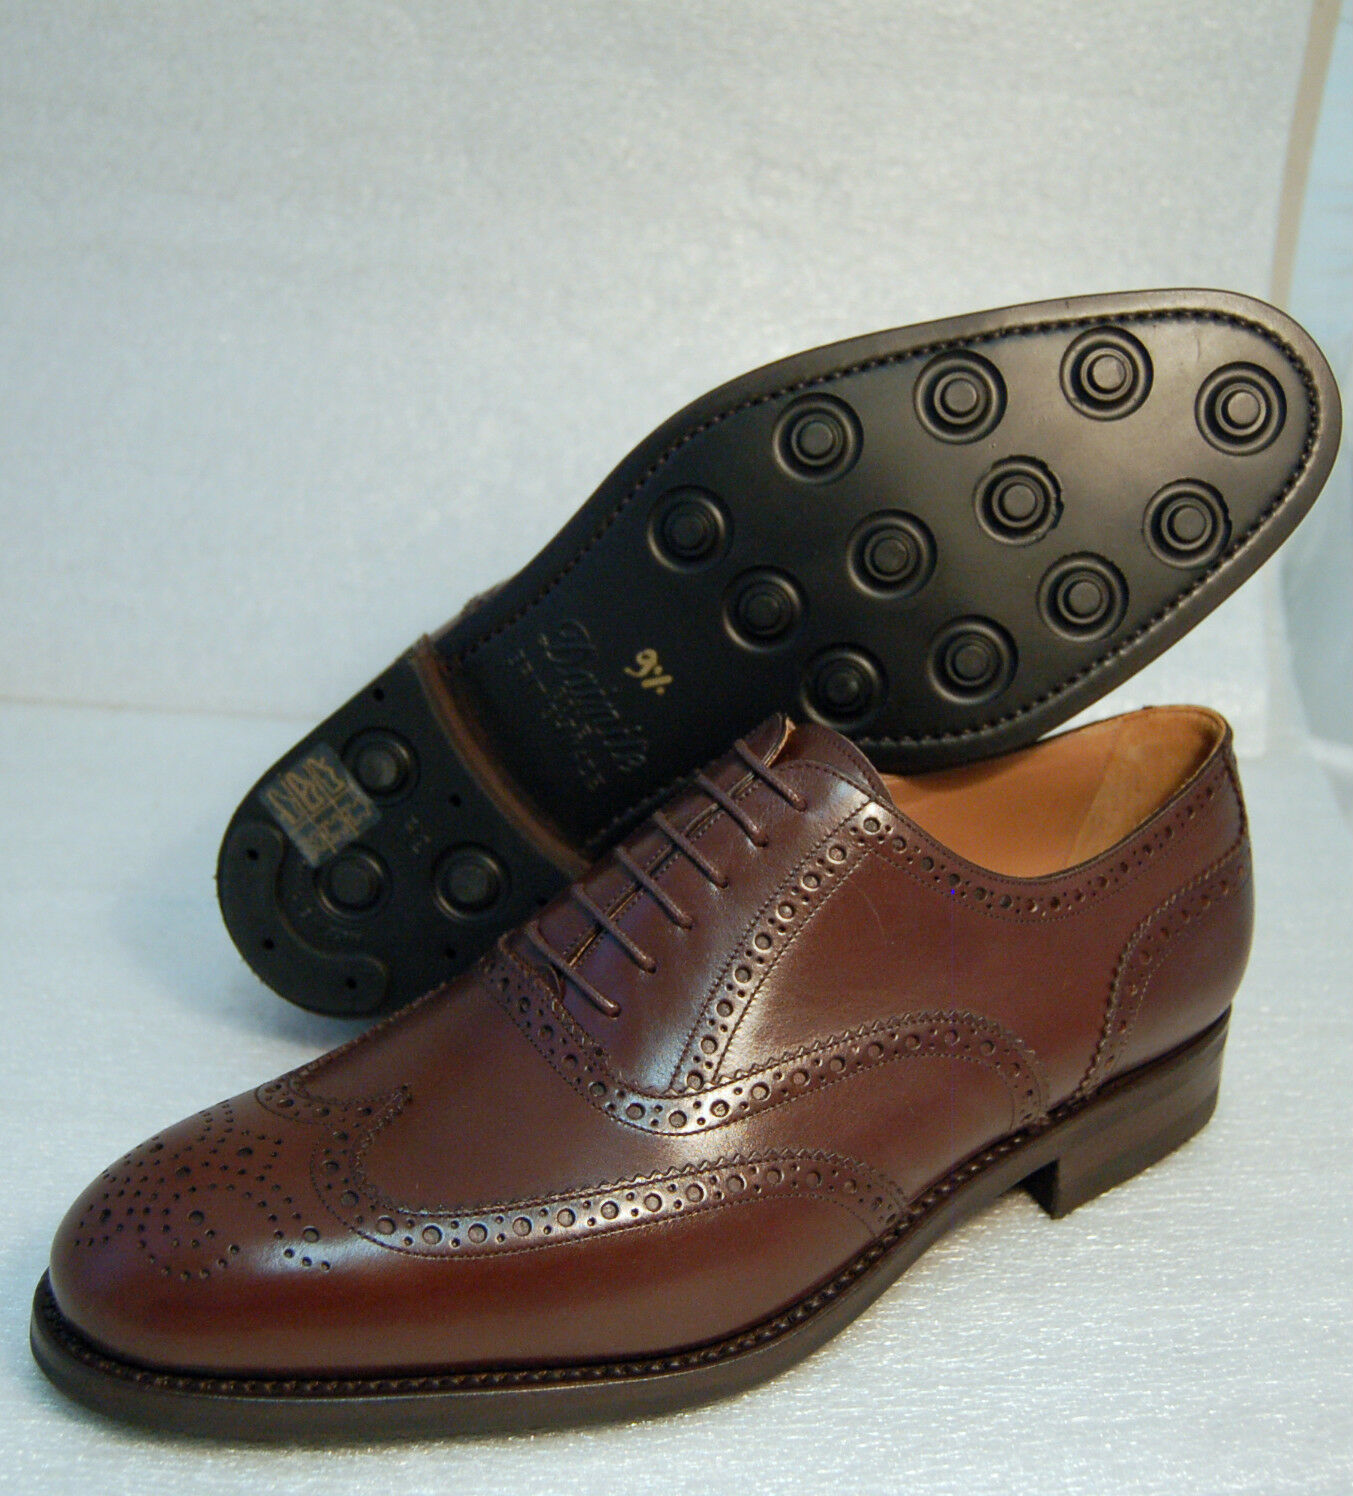 MAN OXFORD WINGTIP VIT.braun - 5048 braun CALF VIT.braun WINGTIP - DOUBLE LTH+ DAINITE RUB SOLE 020462